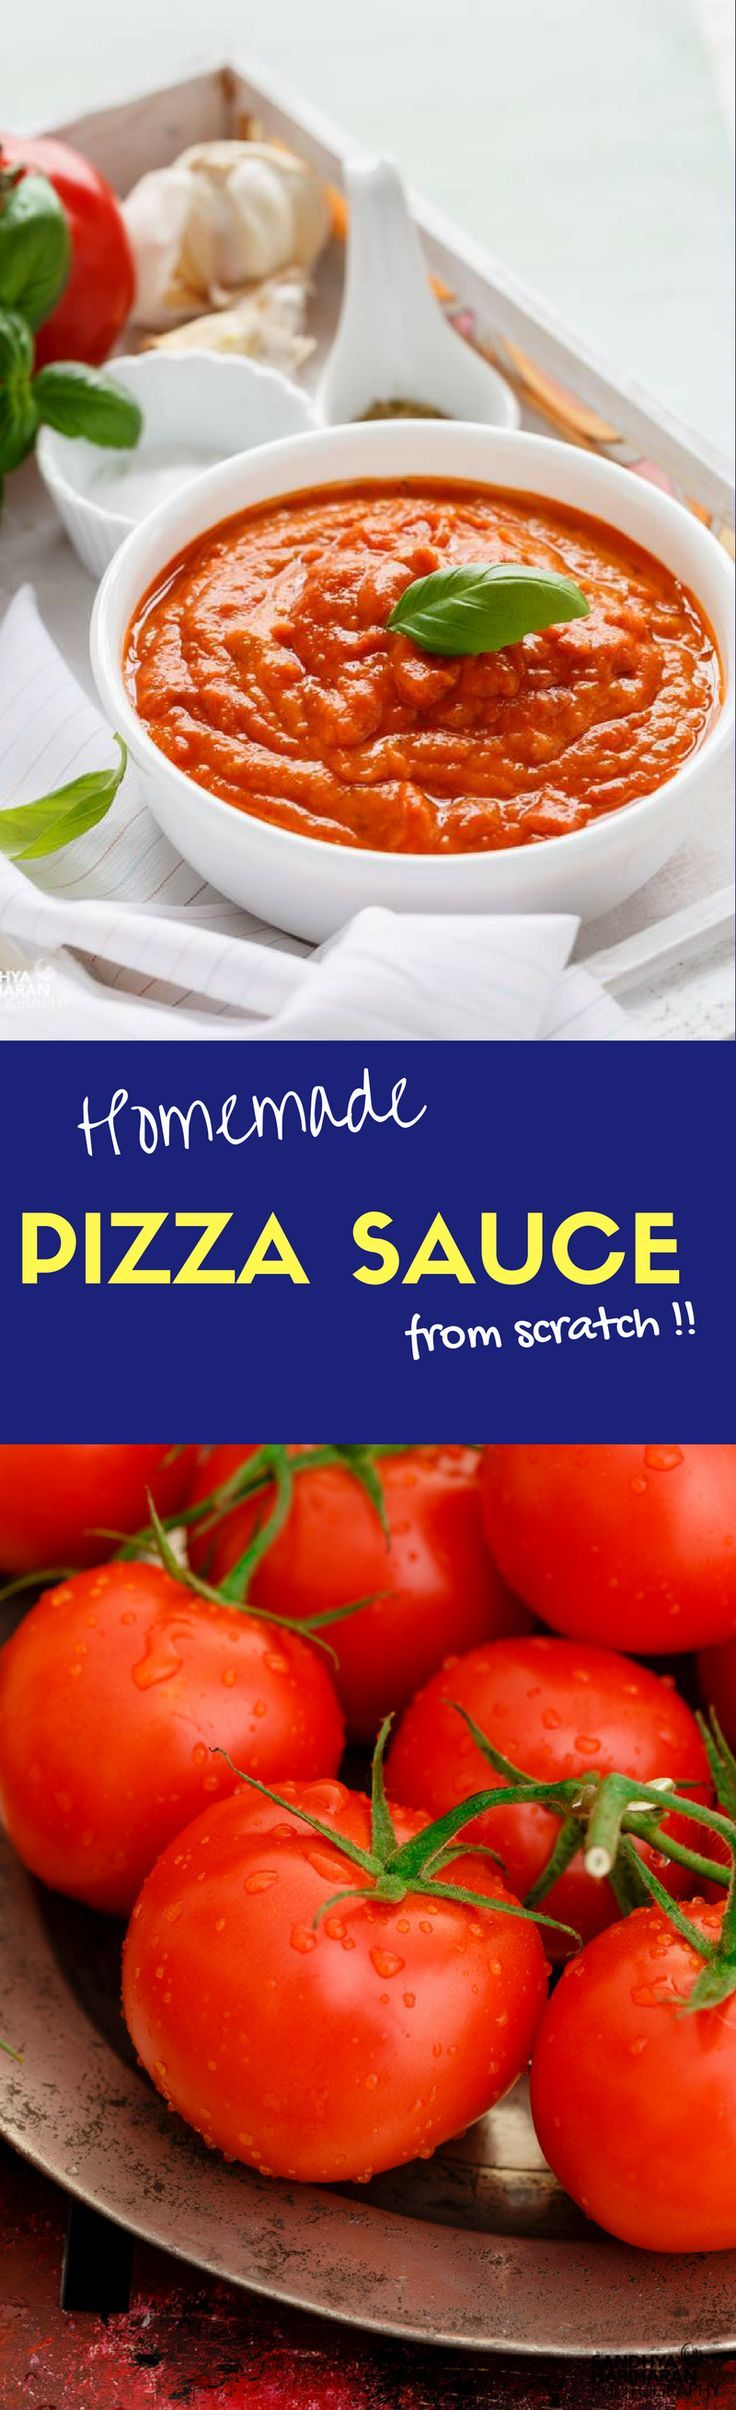 Learn to make Home made Pizza Sauce from Scratch..